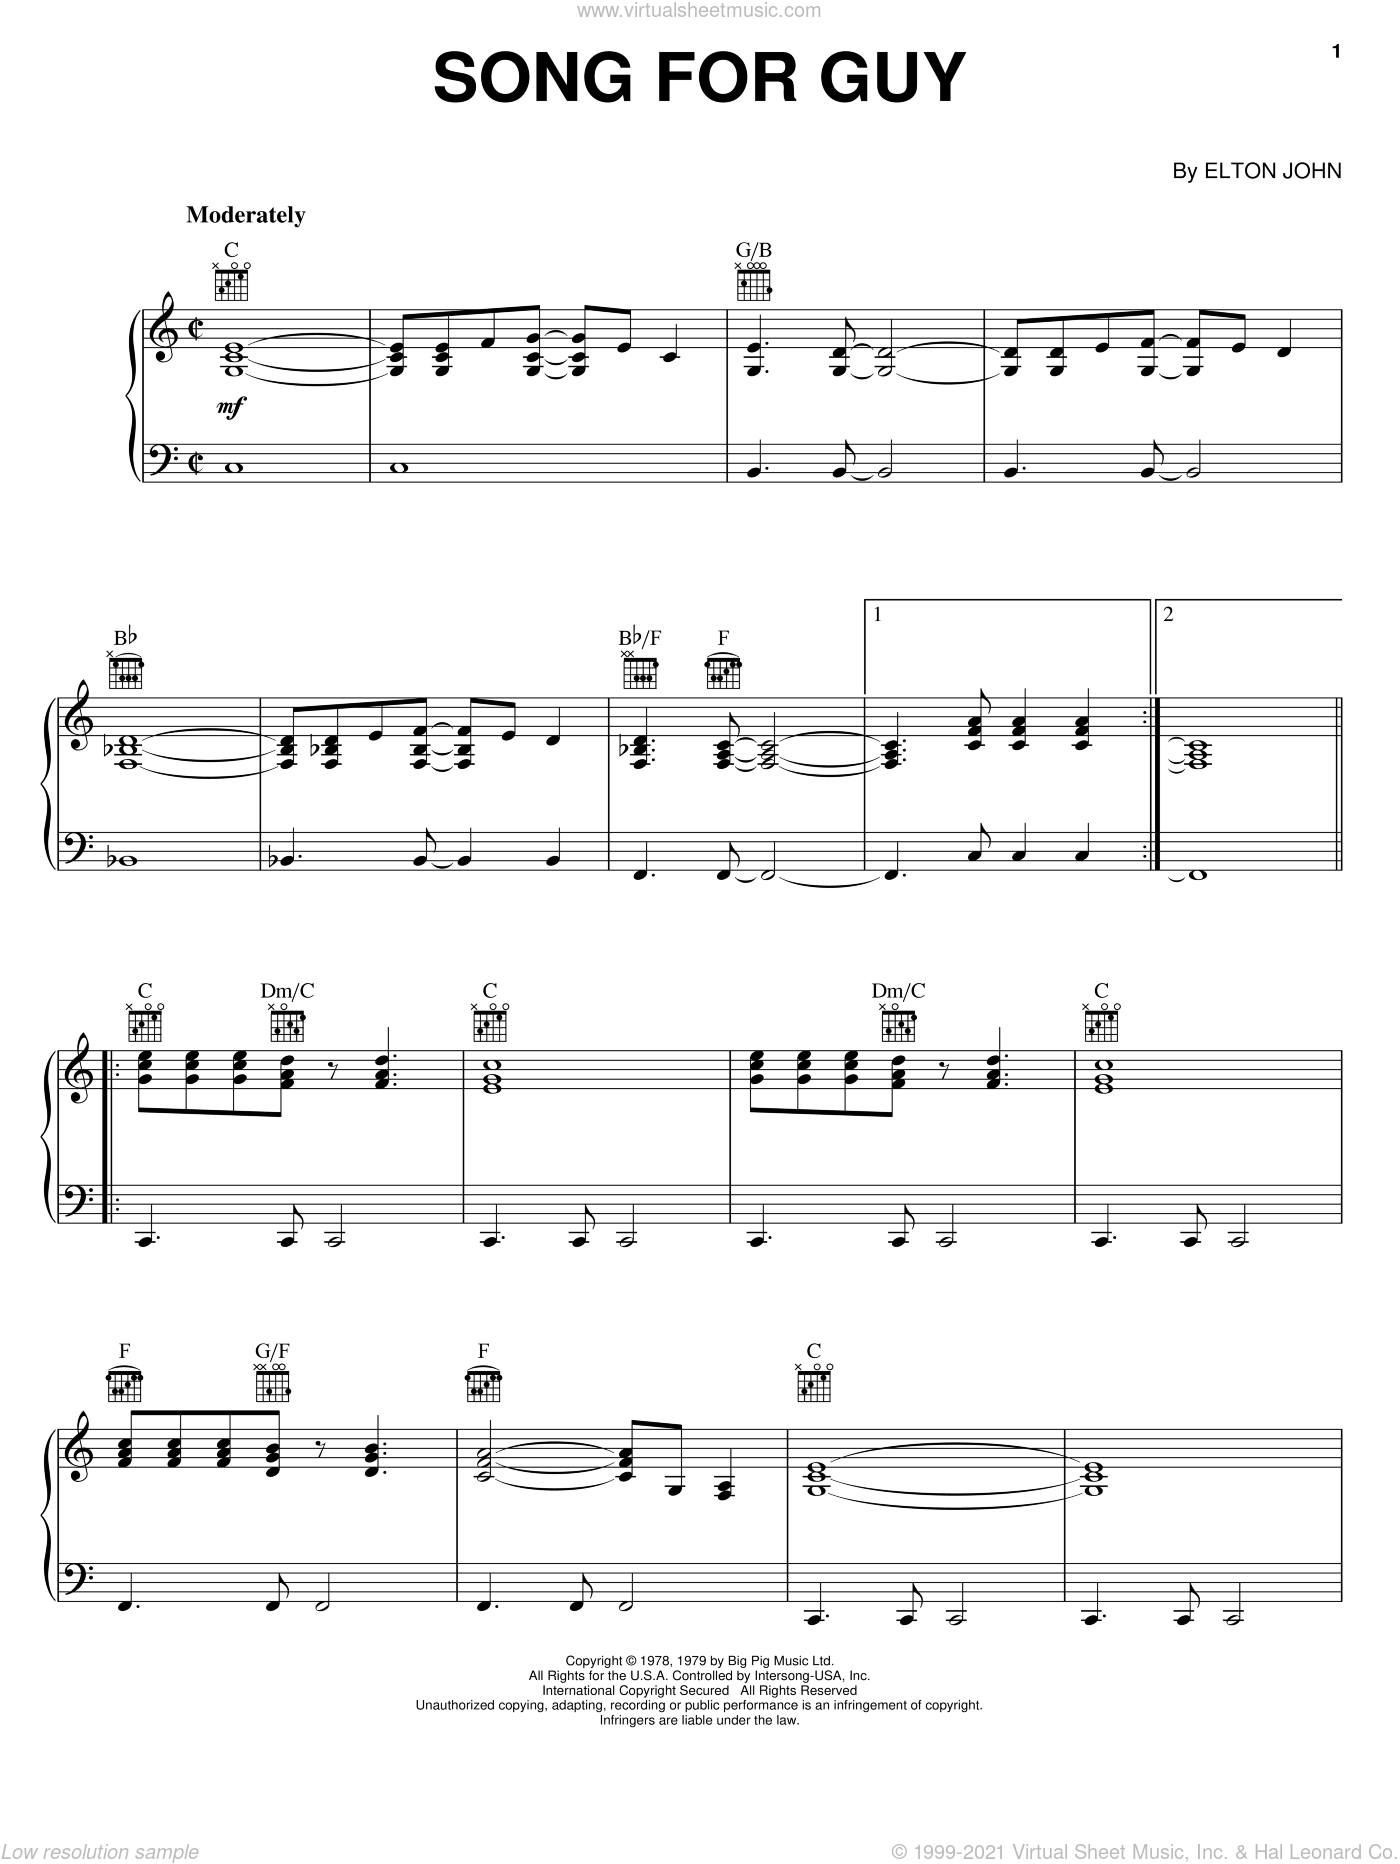 Song For Guy sheet music for voice, piano or guitar by Elton John, intermediate skill level